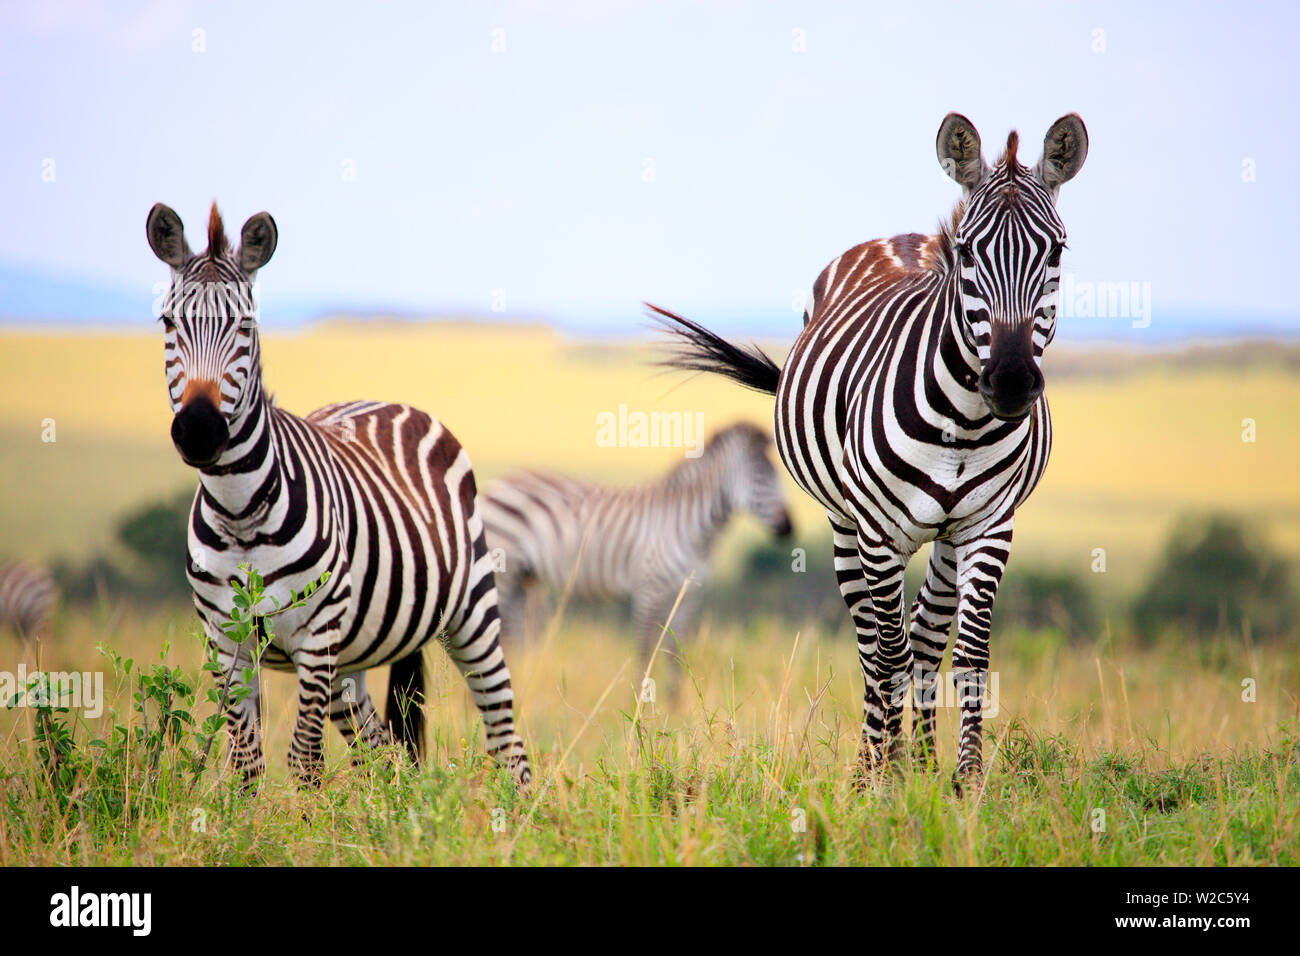 Grevy zebra (Equus grevyi), Maasai Mara National Reserve, Kenya Stock Photo